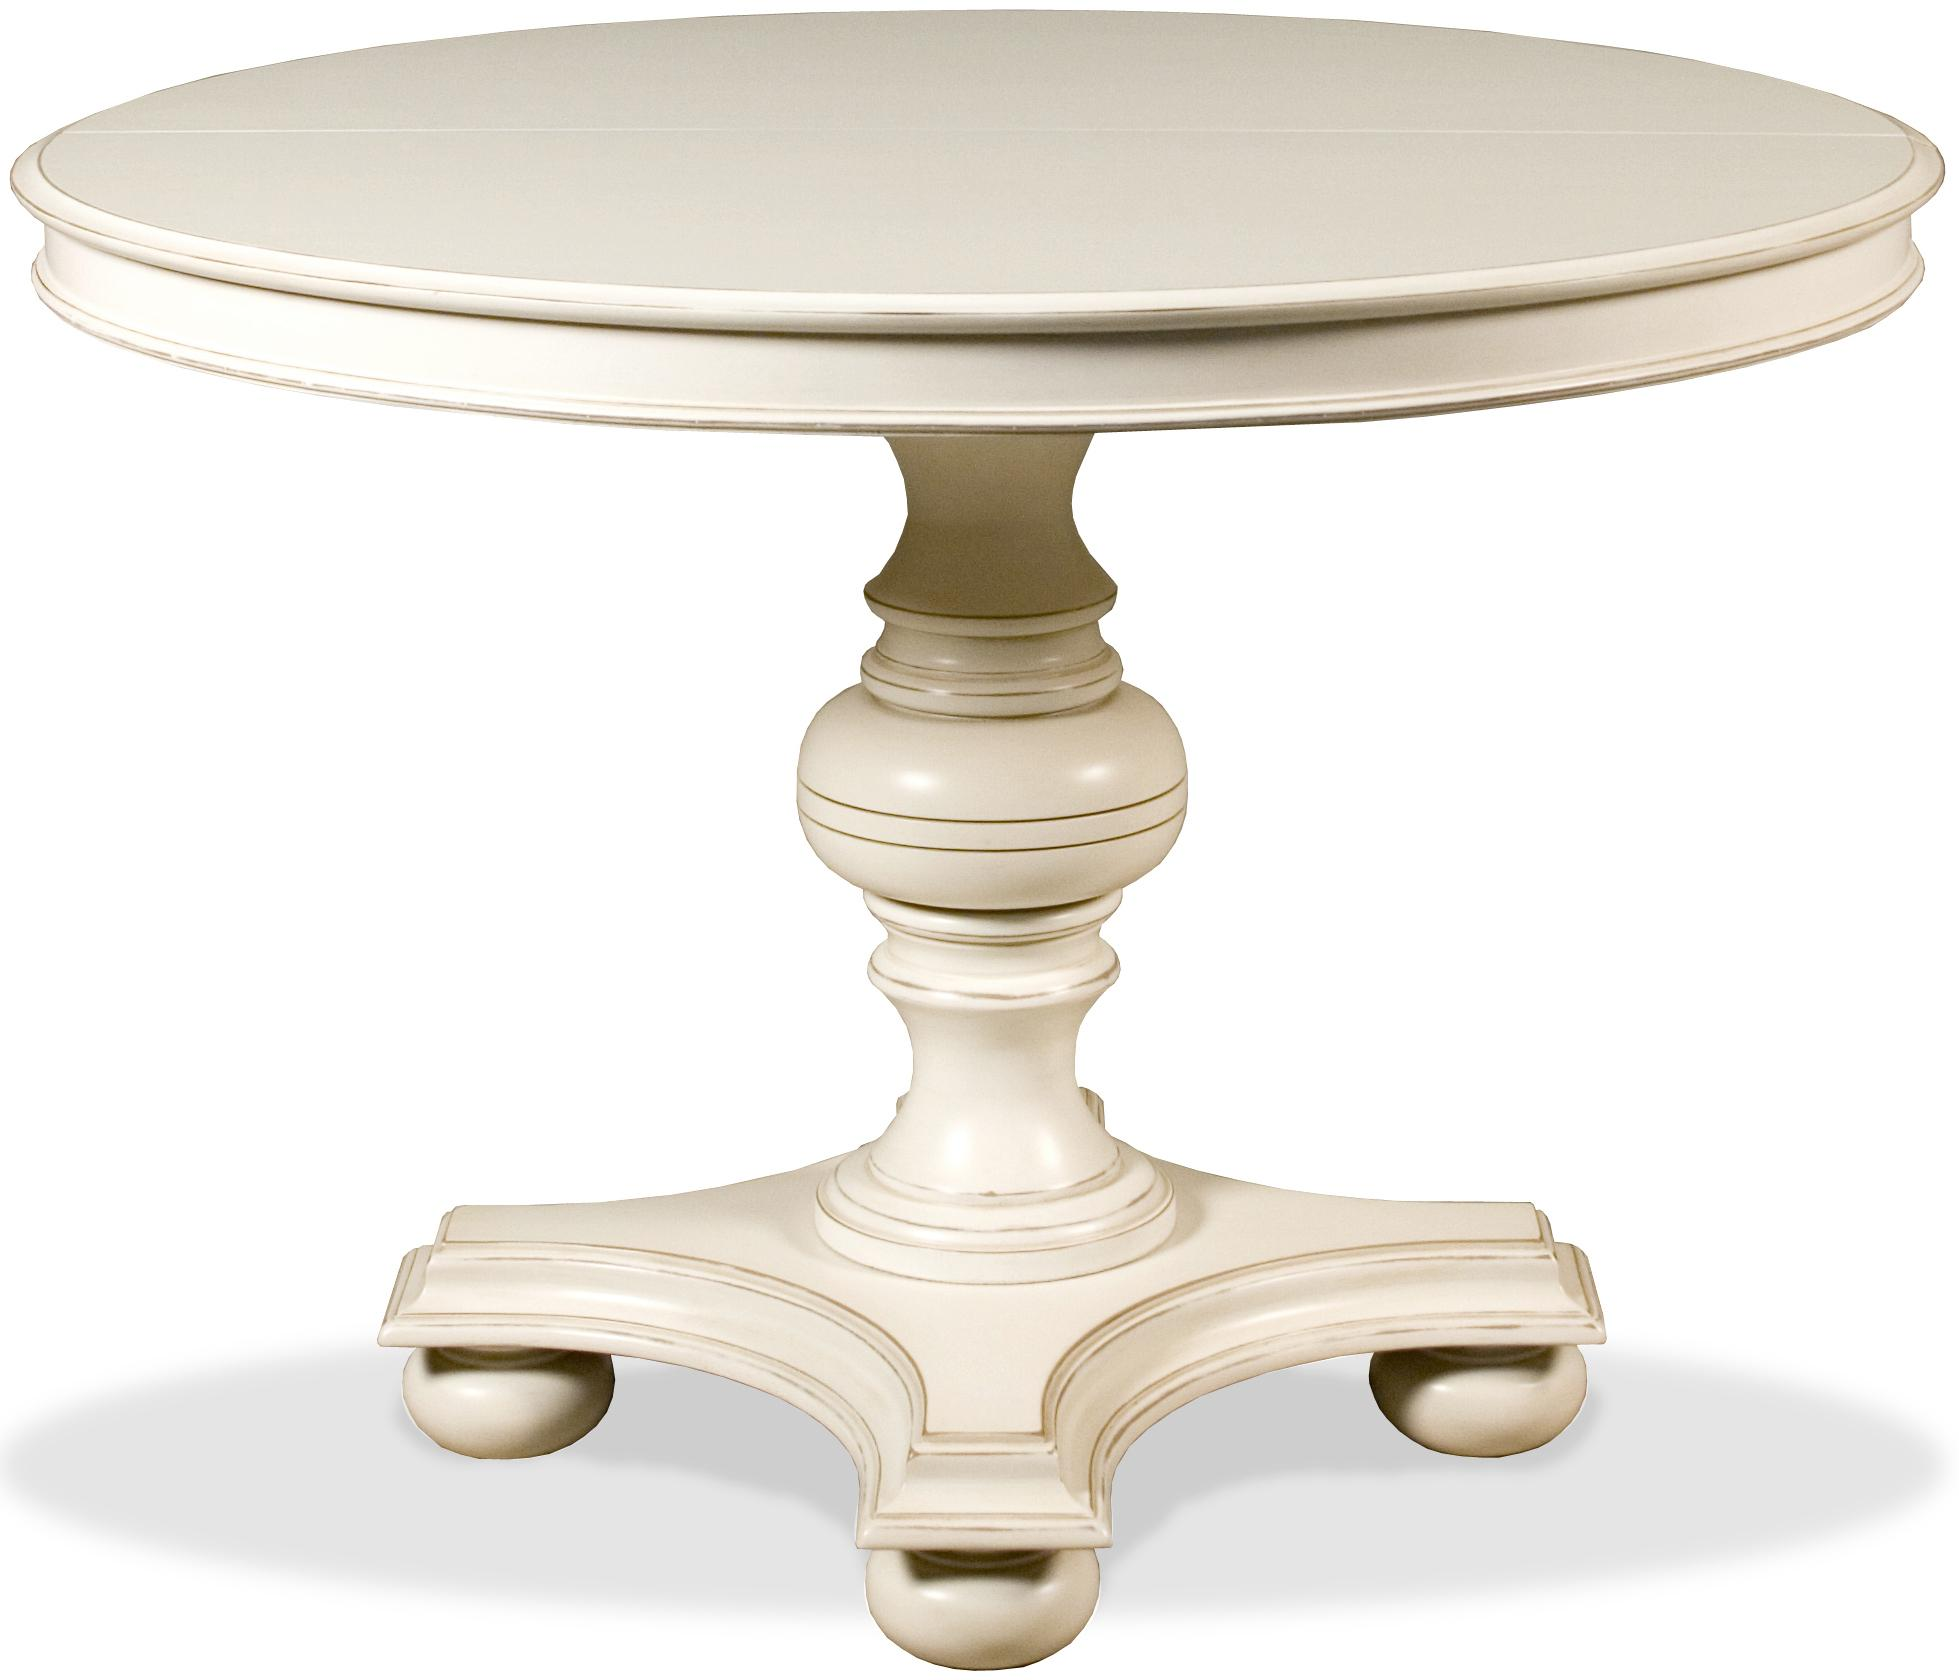 Placid Cove 42 Round Dining Table With Pedestal Base By Riverside